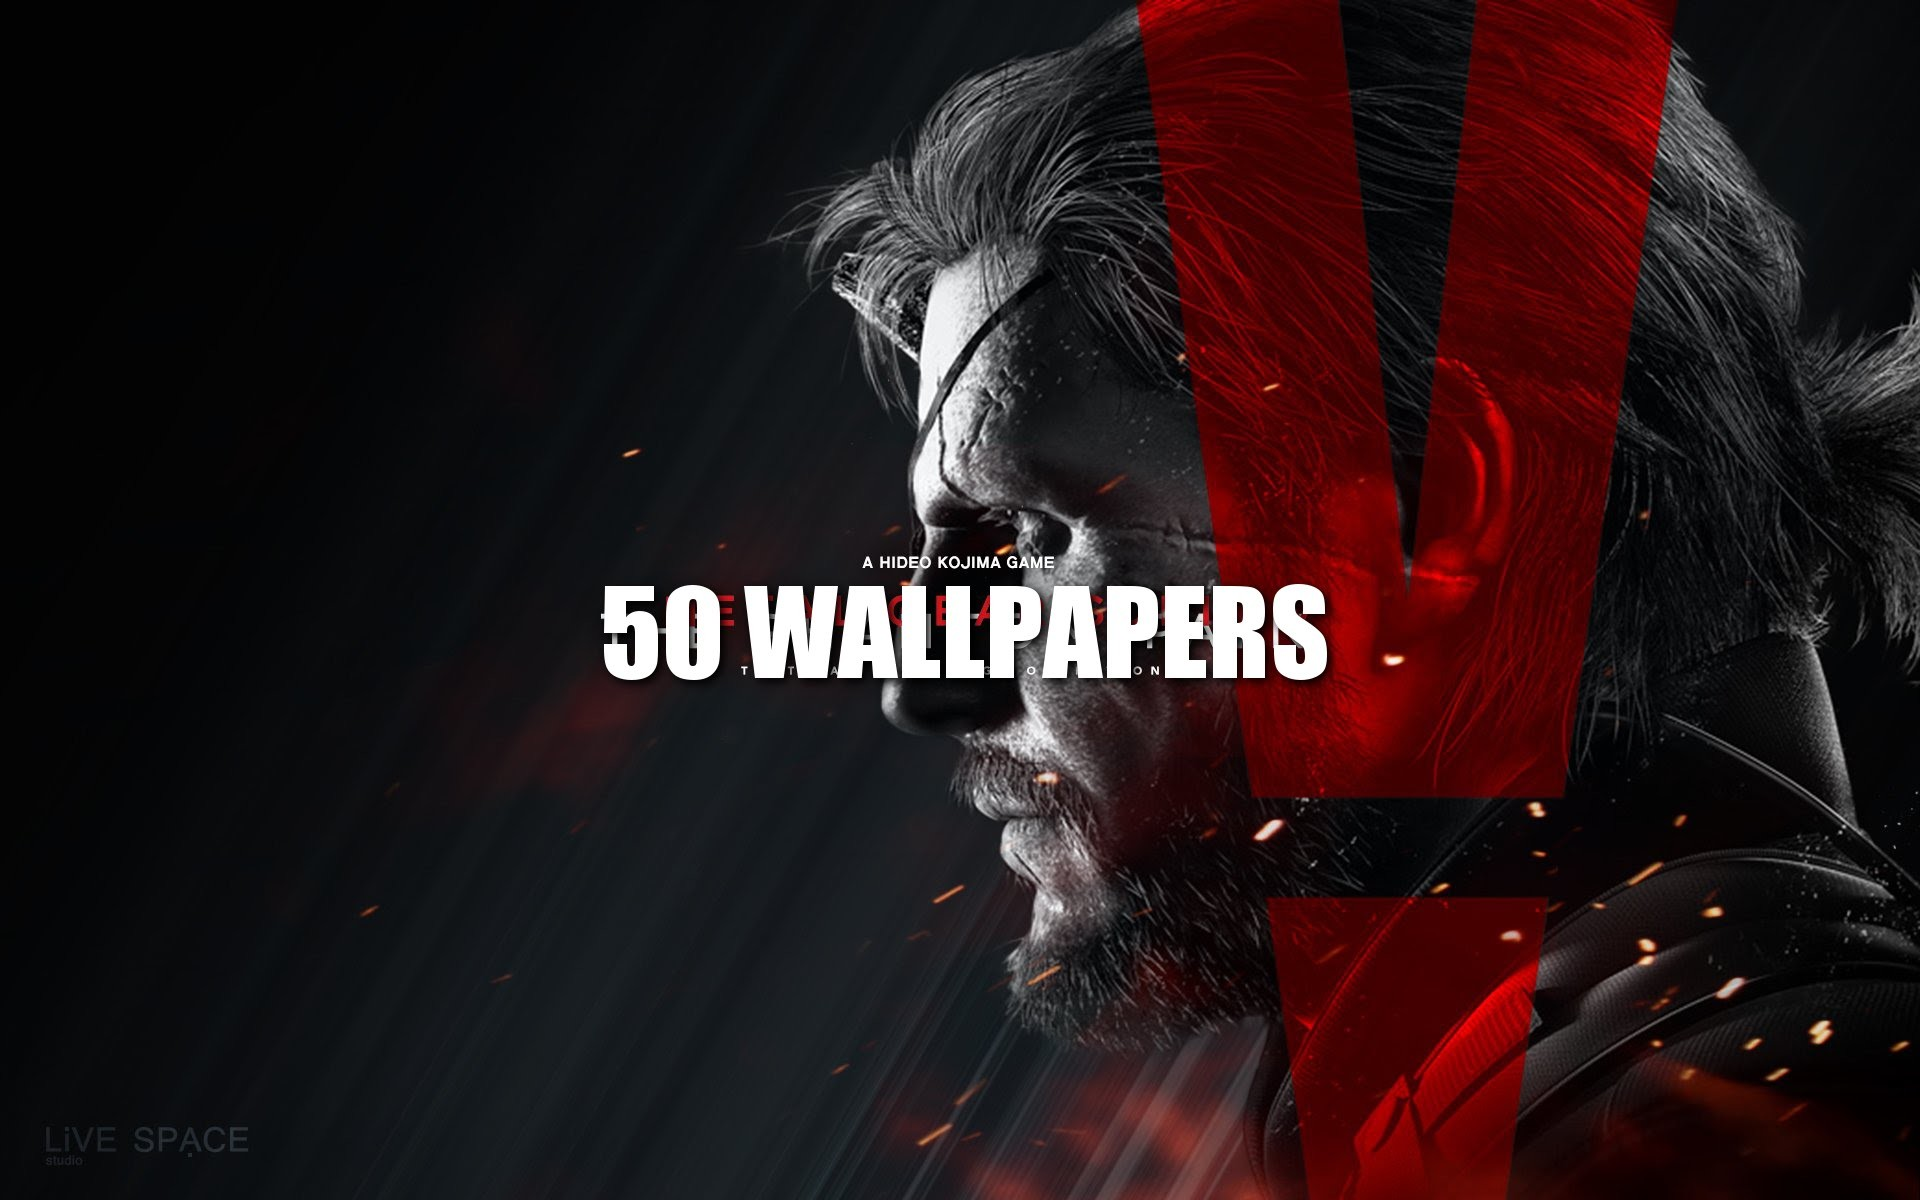 1920x1200 Pack 50 Wallpapers de Metal Gear Solid |1080p|